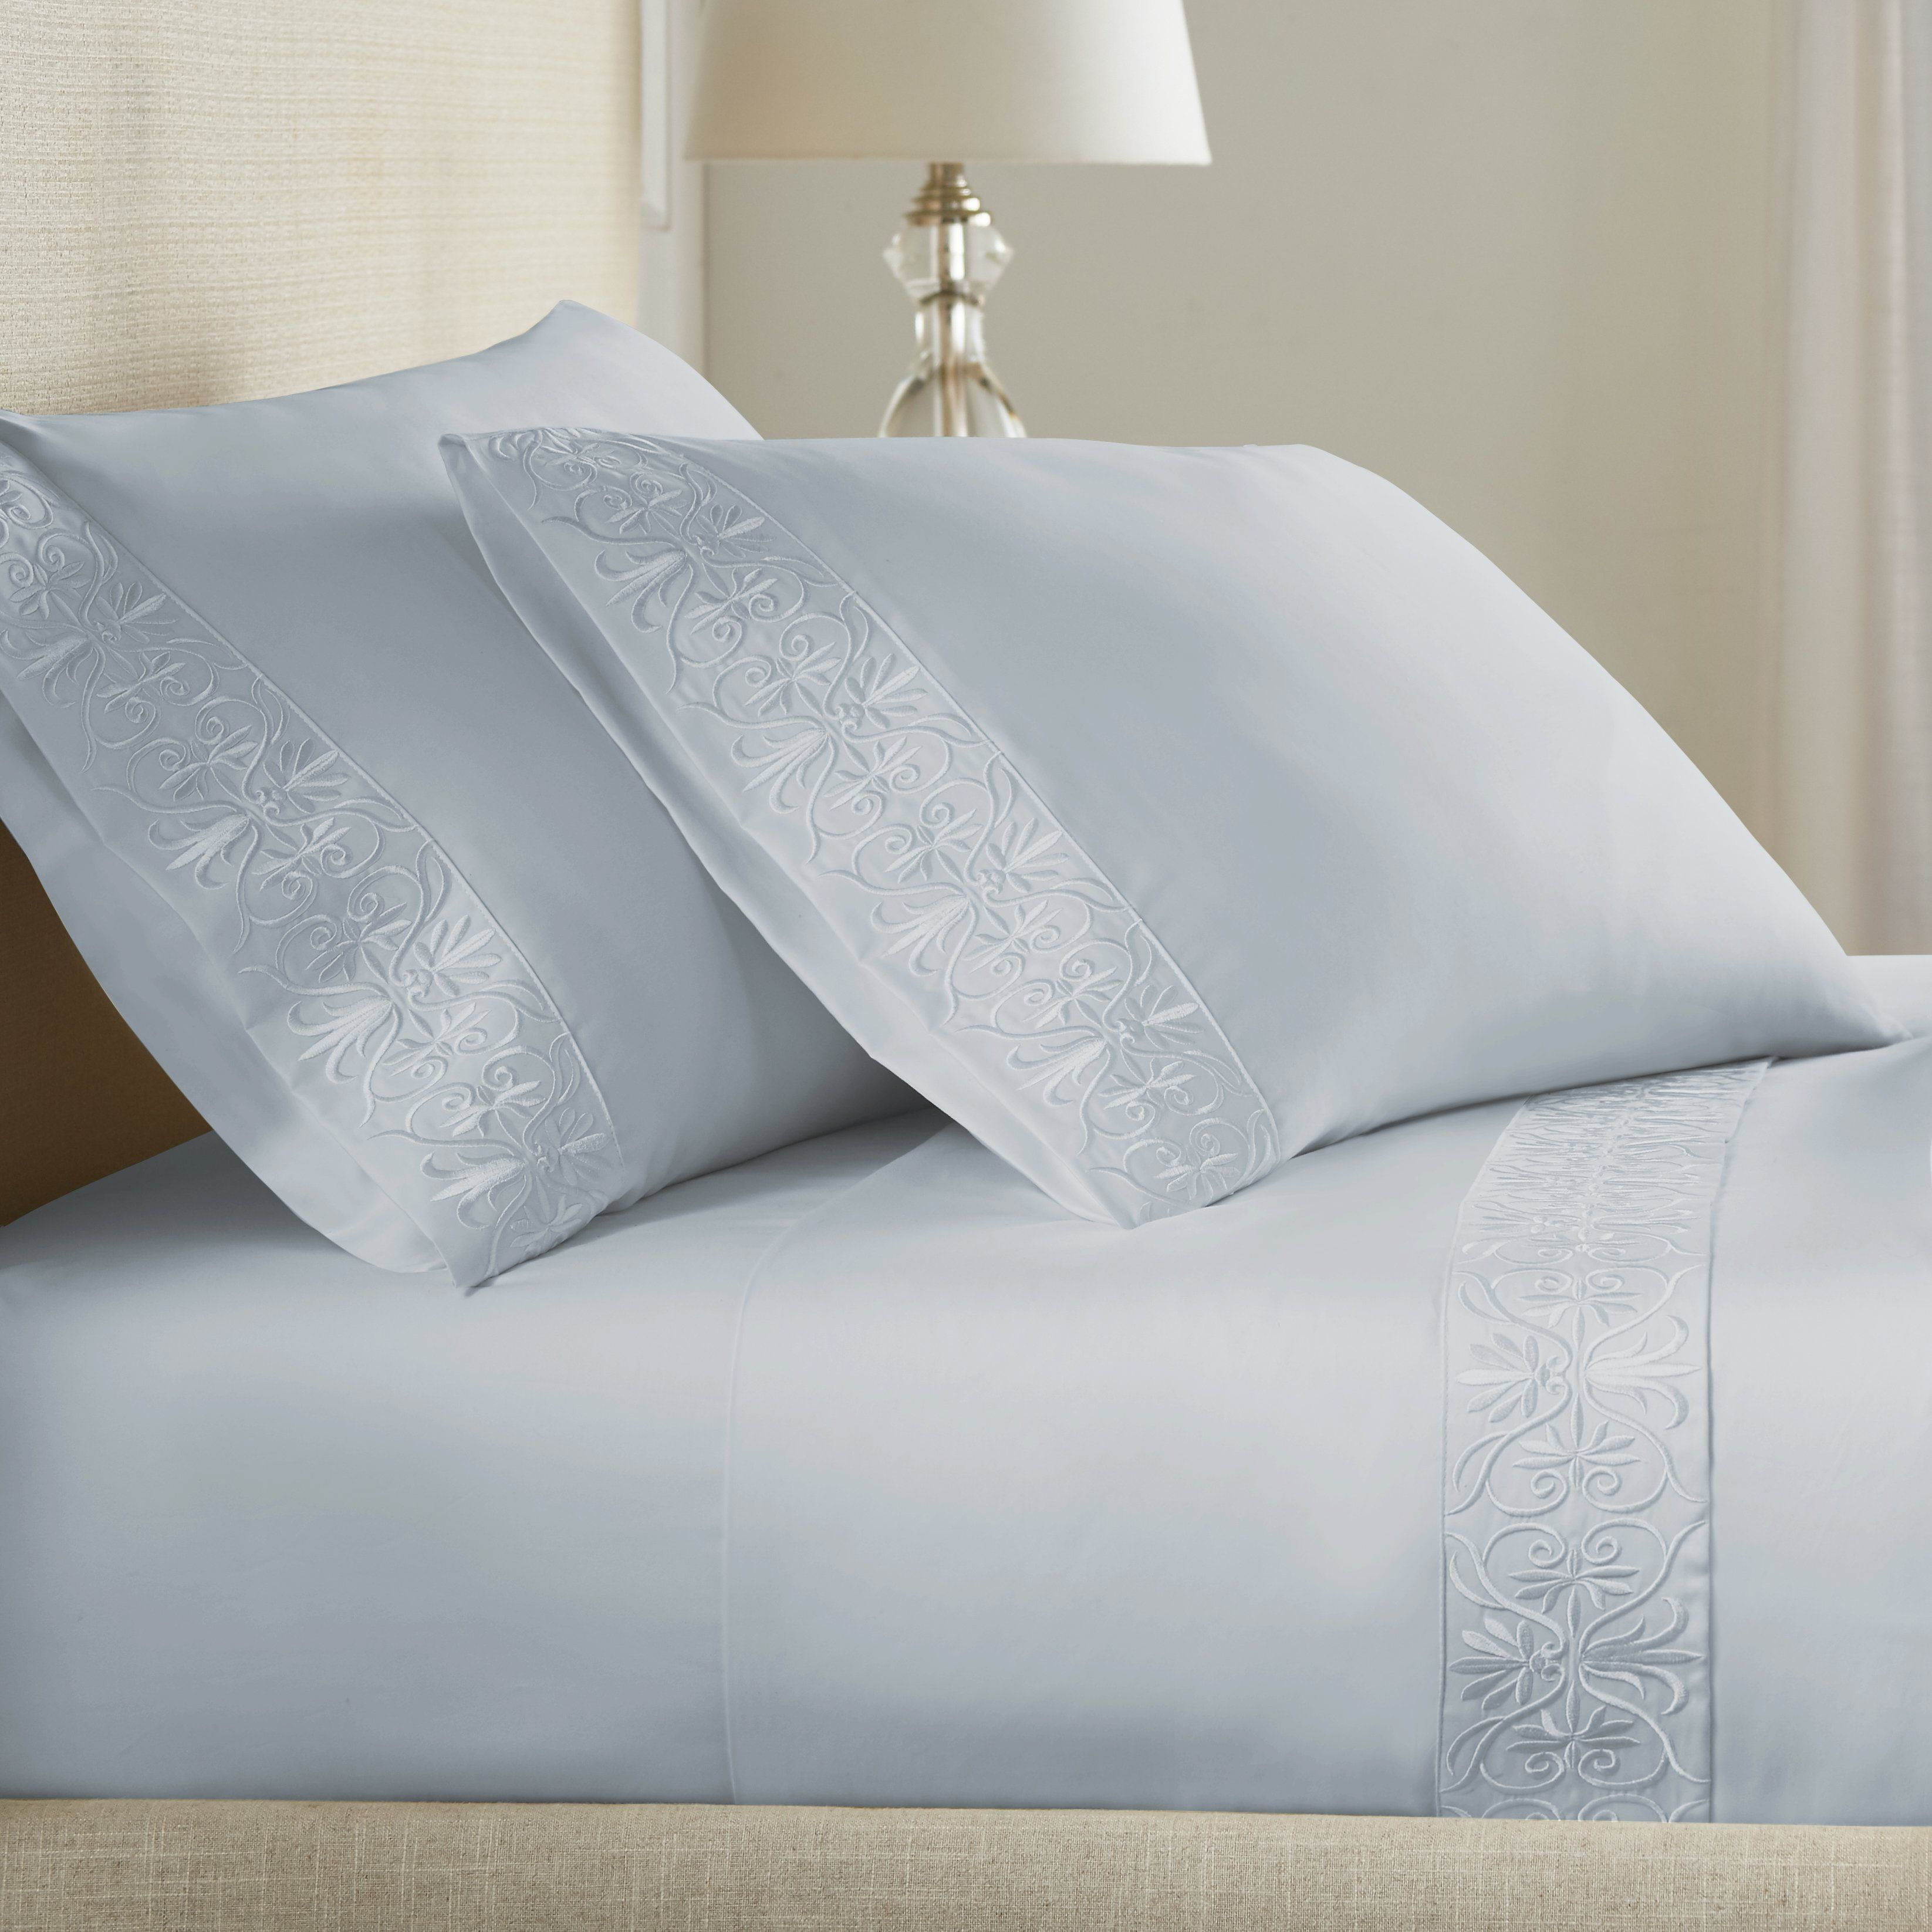 Ariane Sheet Set In Icy Blue 100 Els Giza Egyptian Cotton In